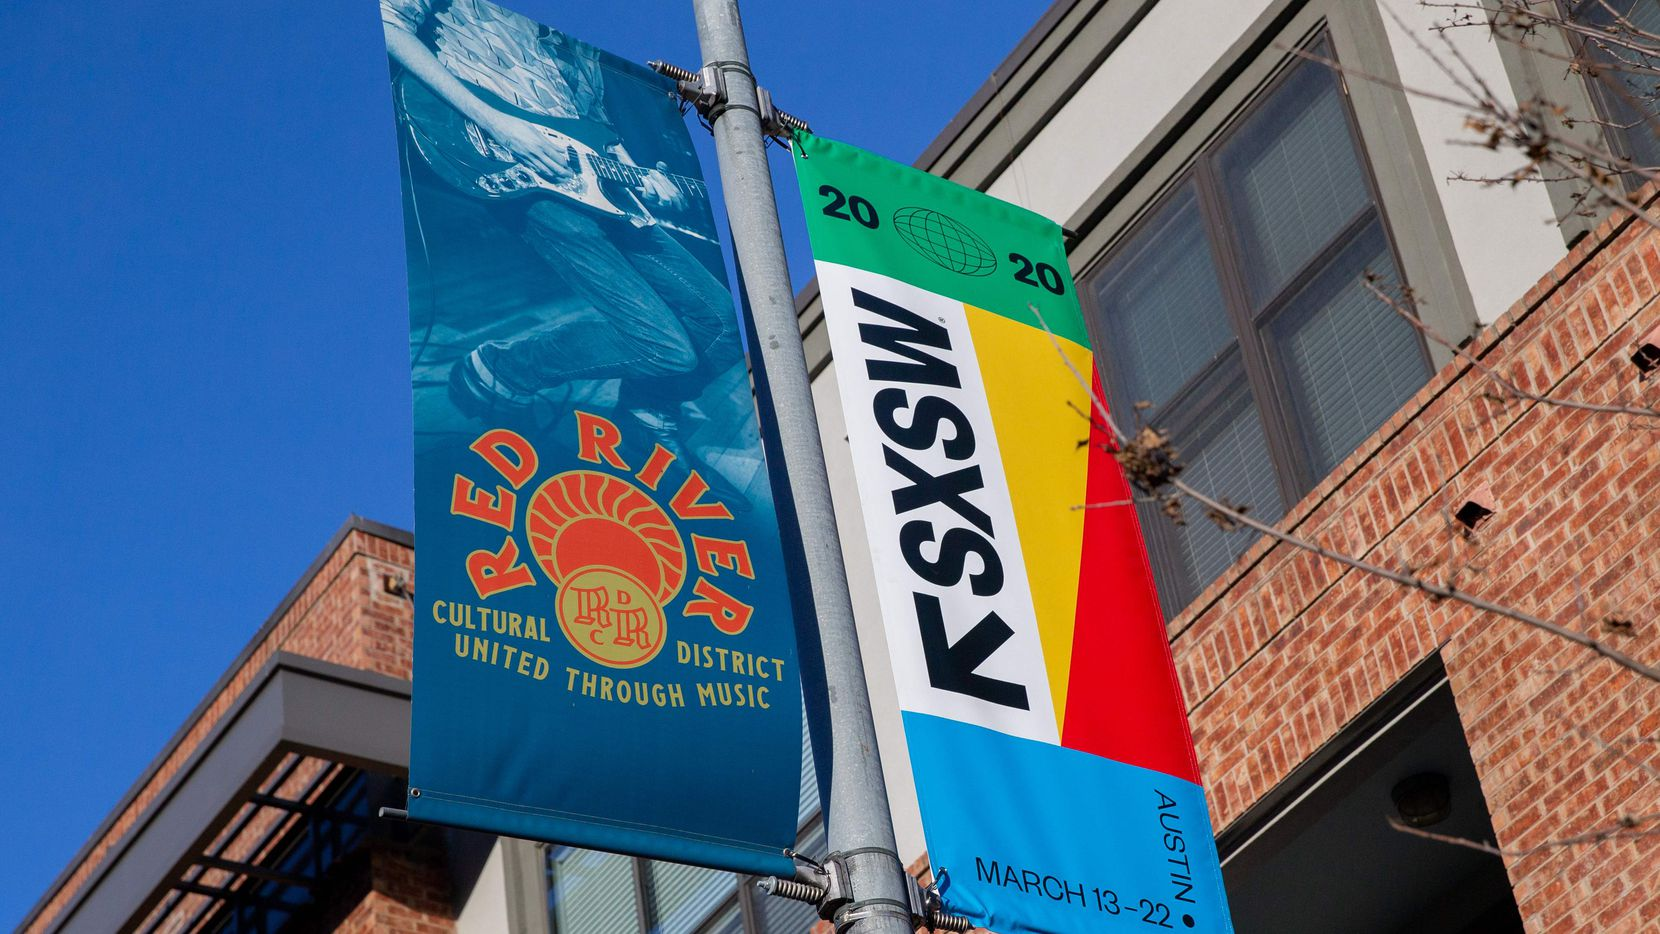 SXSW 2020 banners are seen in Austin on March 6, 2020 in Austin Texas. The South by Southwest festival in Texas has been cancelled due to concerns over the spread of the new coronavirus, organizers and the host city of Austin said on March 6, 2020.